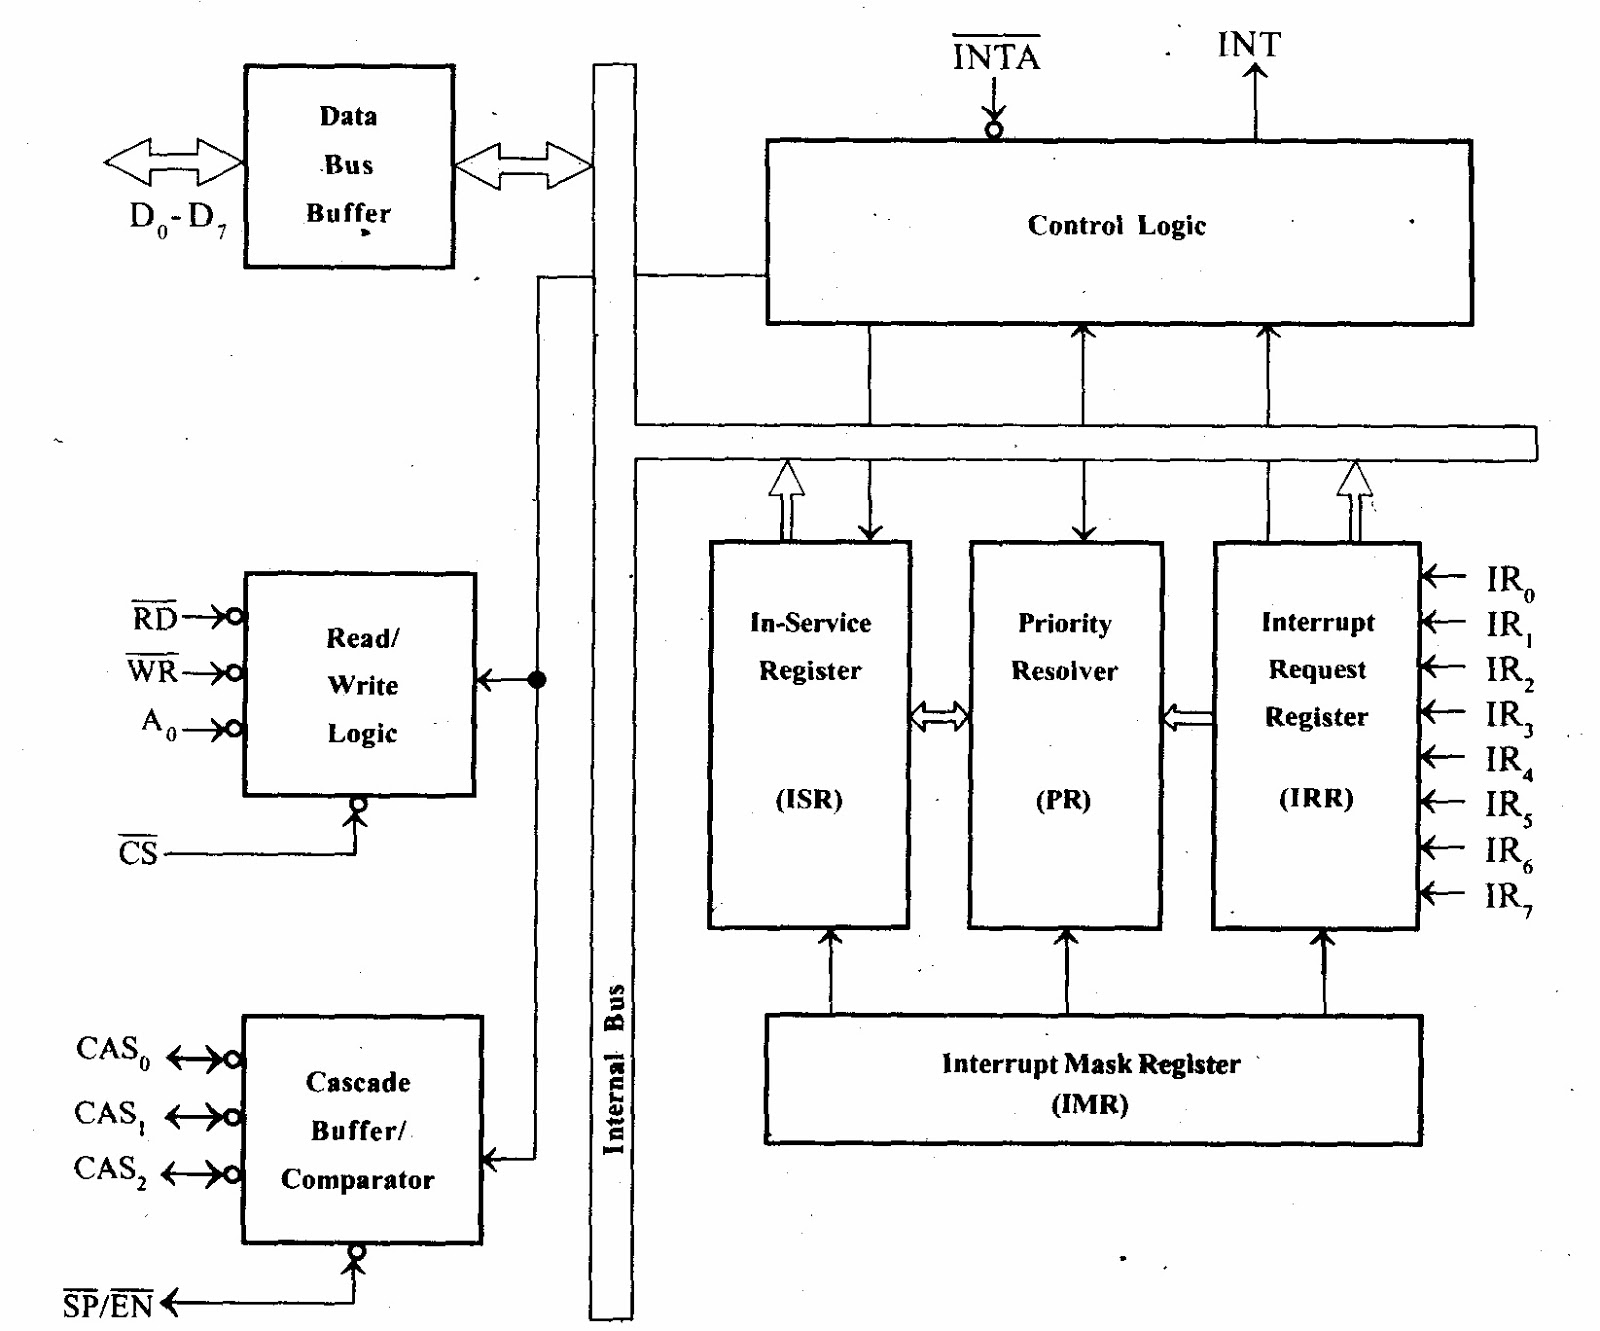 FEATURES & FUNCTIONAL BLOCK DIAGRAM OF 8259 PROCESSOR